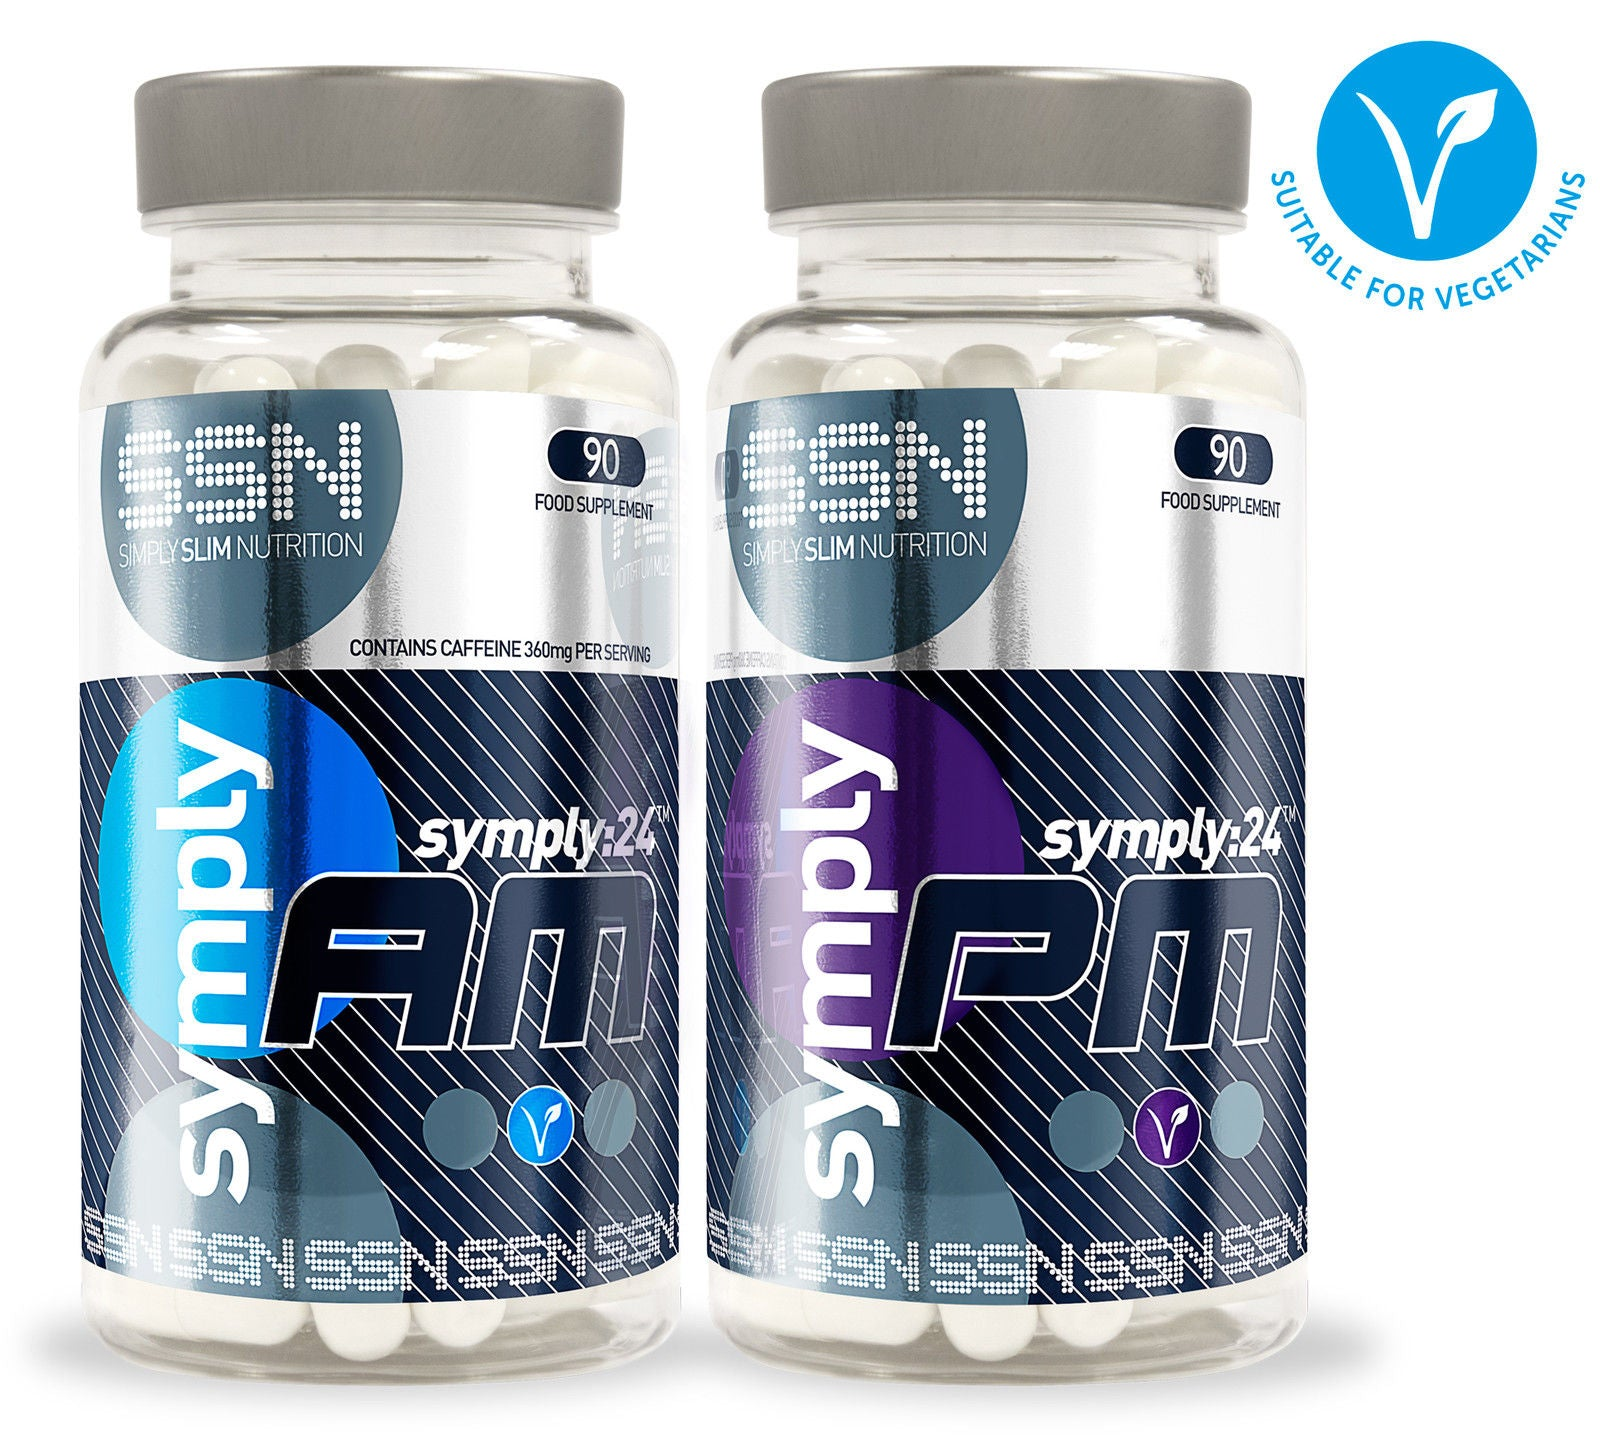 Symply24 AM/PM All day supplements by Urban Fuel